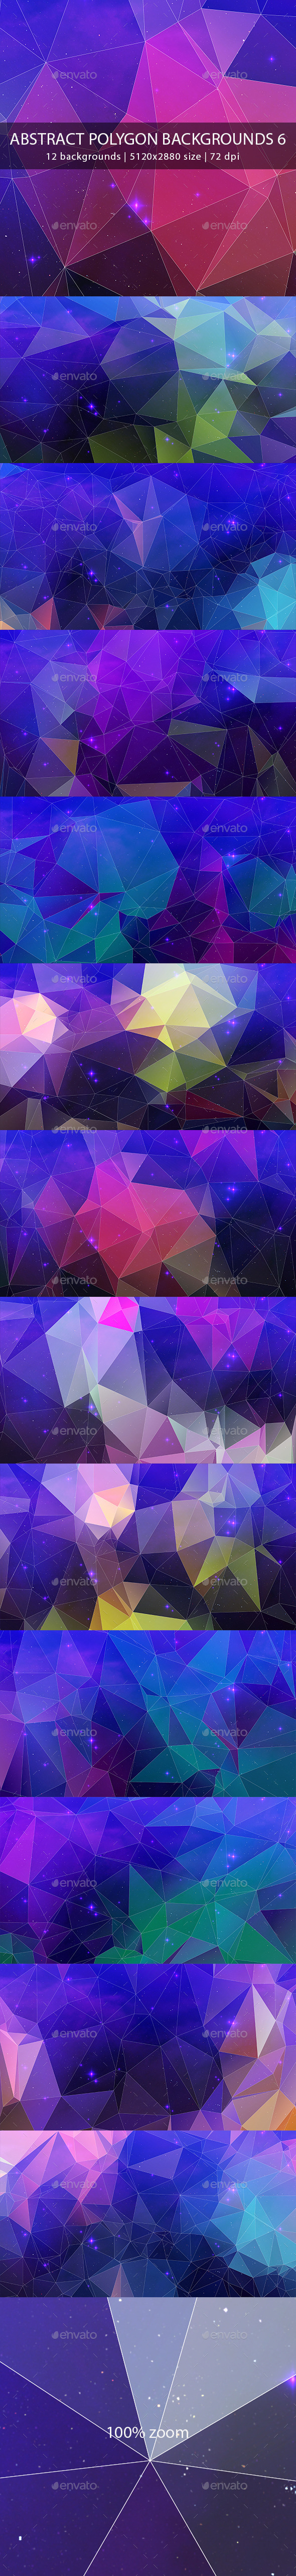 Abstract Polygon Backgrounds 6 - Abstract Backgrounds